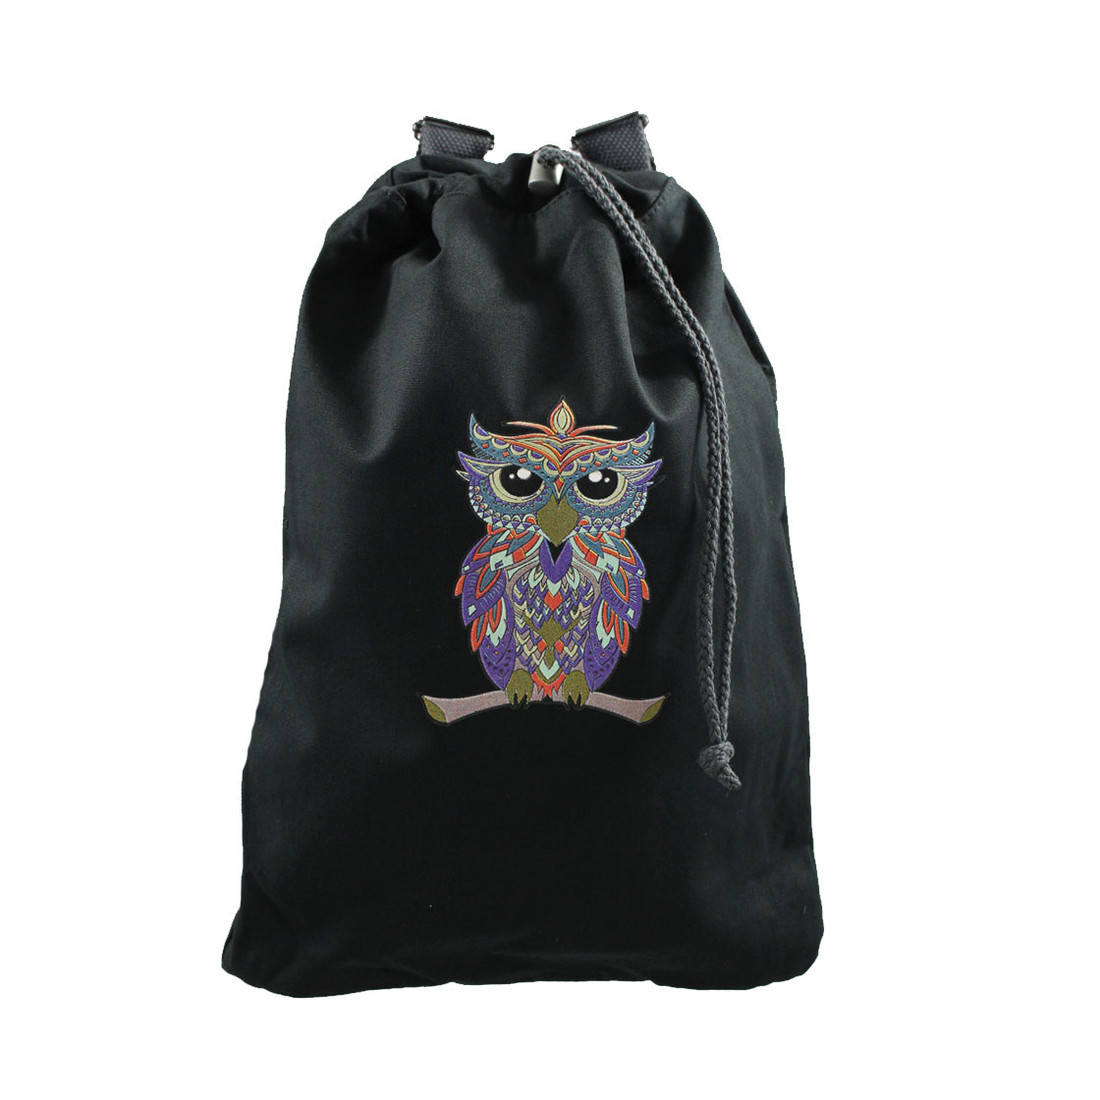 Colorful owl backpack purse front view.